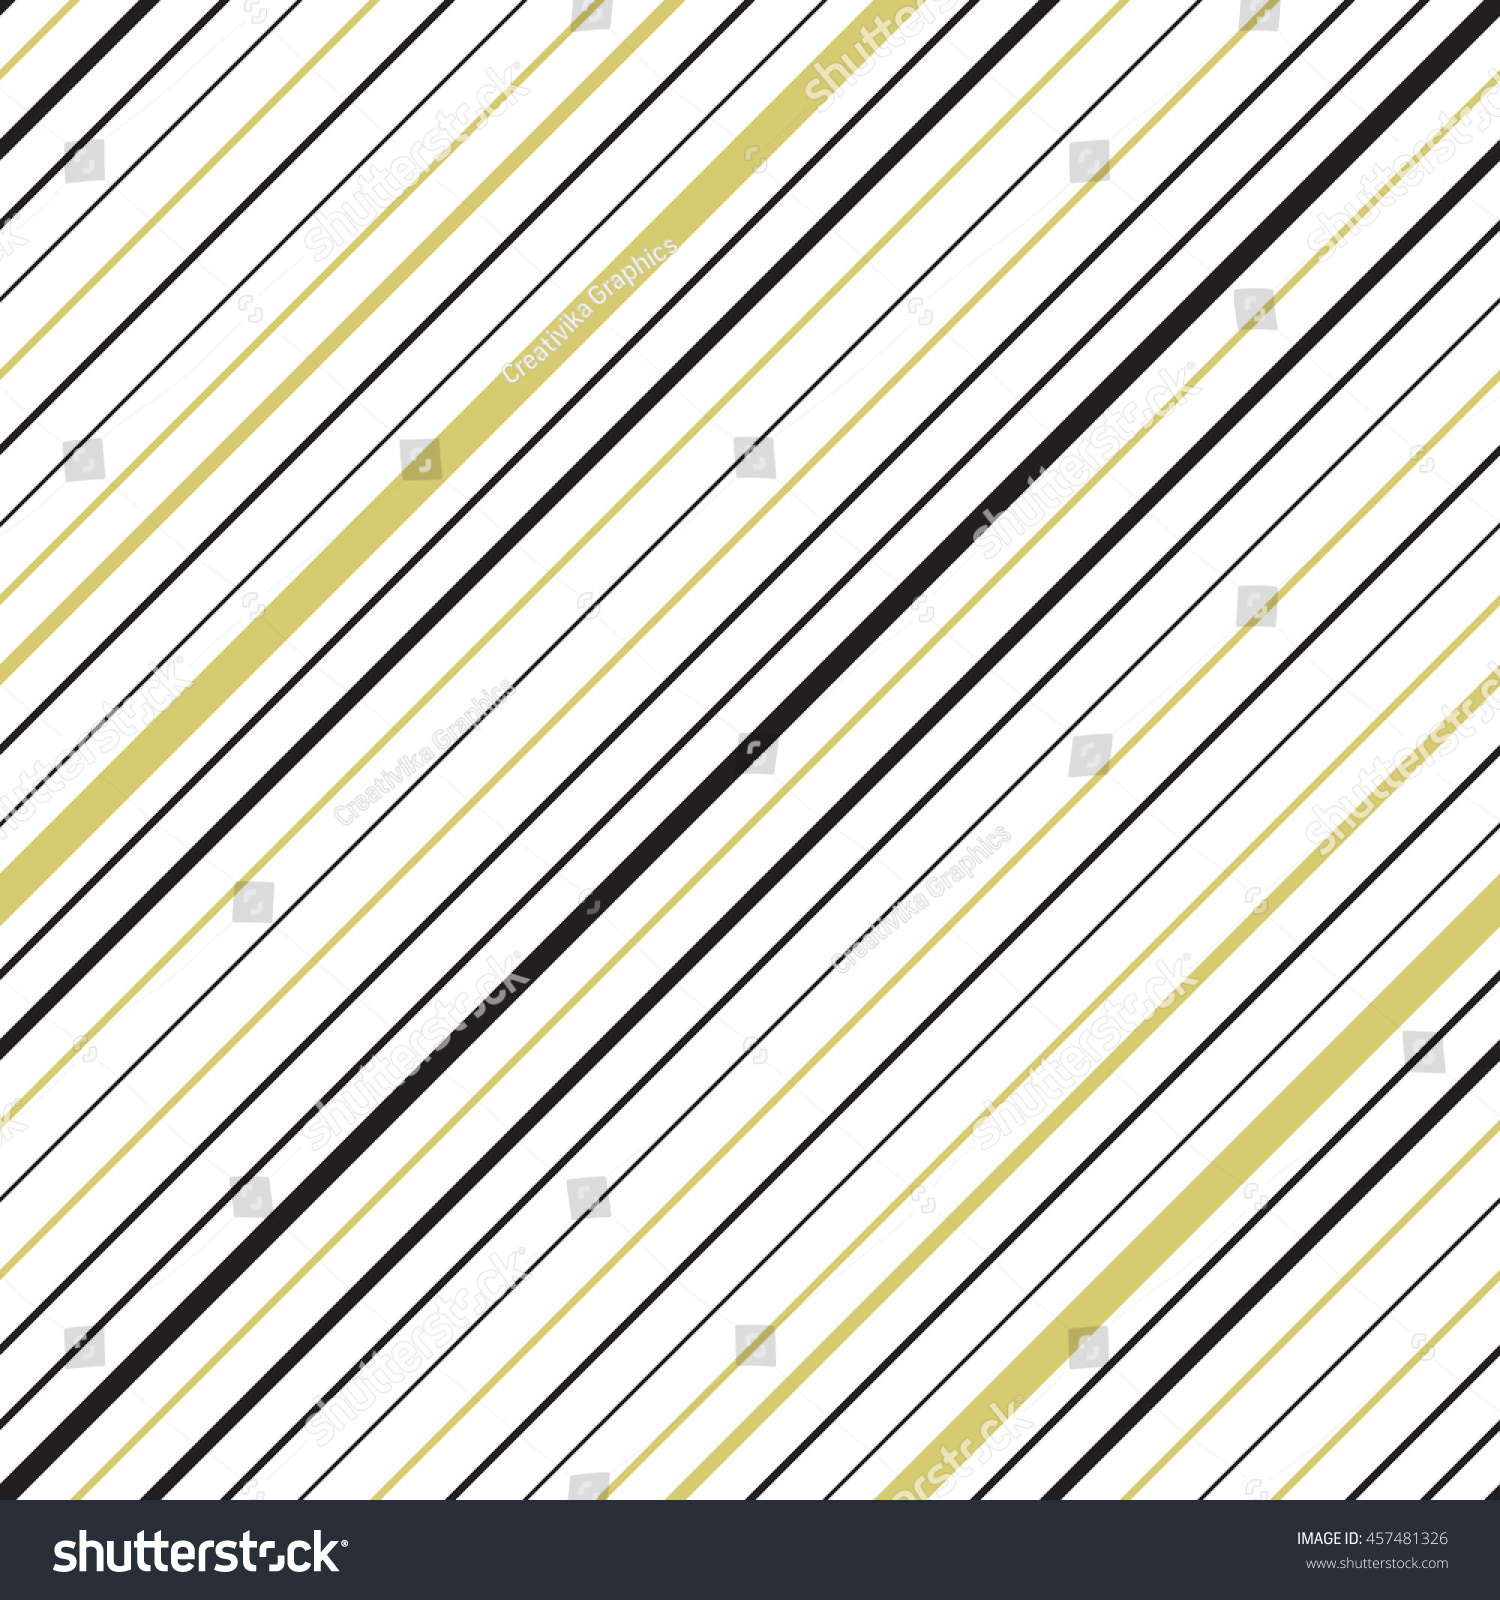 Line Texture Seamless : Golden colored diagonal striped seamless pattern stock